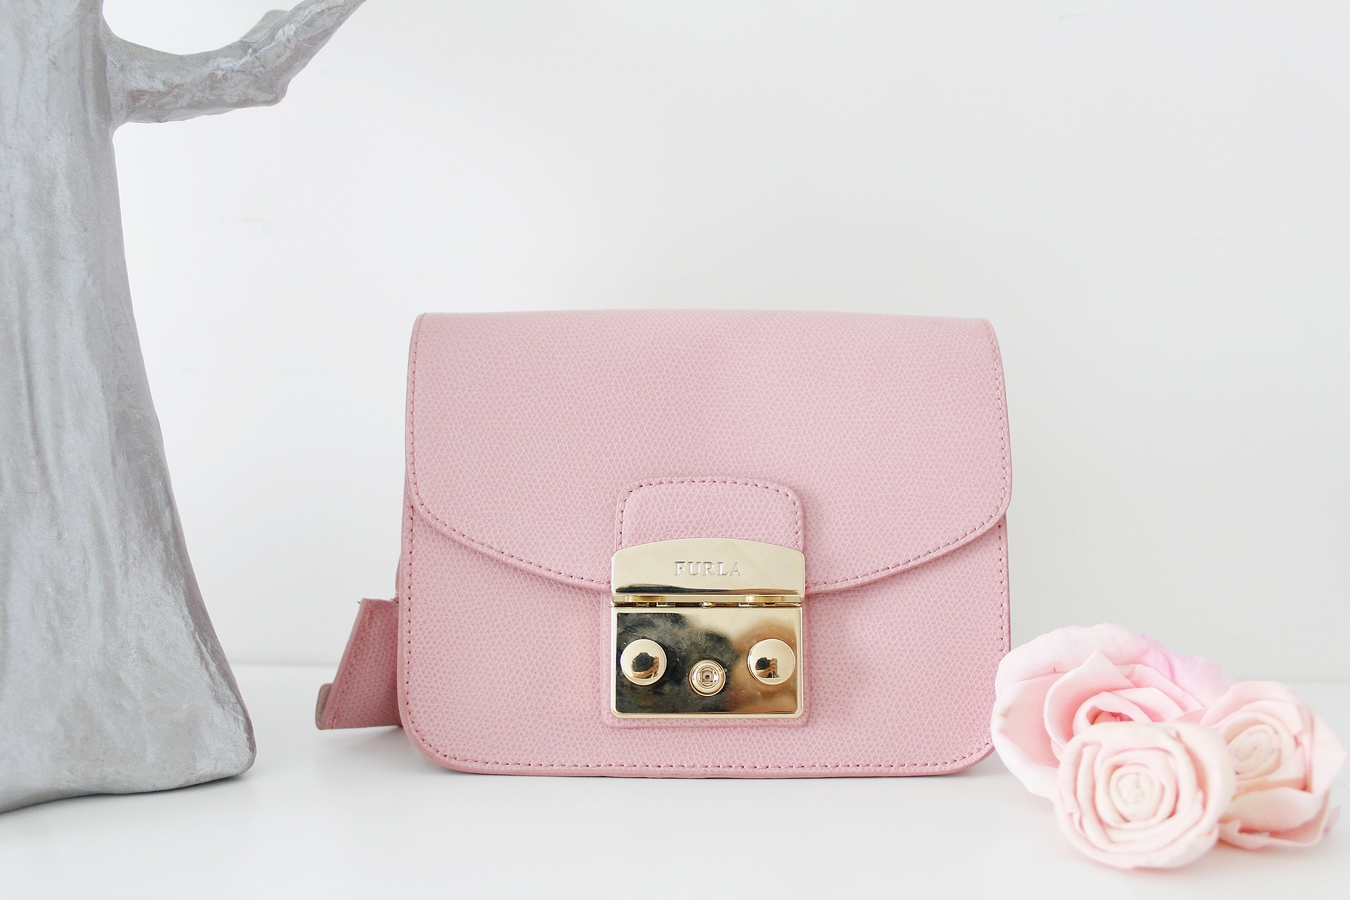 mignonneries furla - Du style madame - blog mode paris